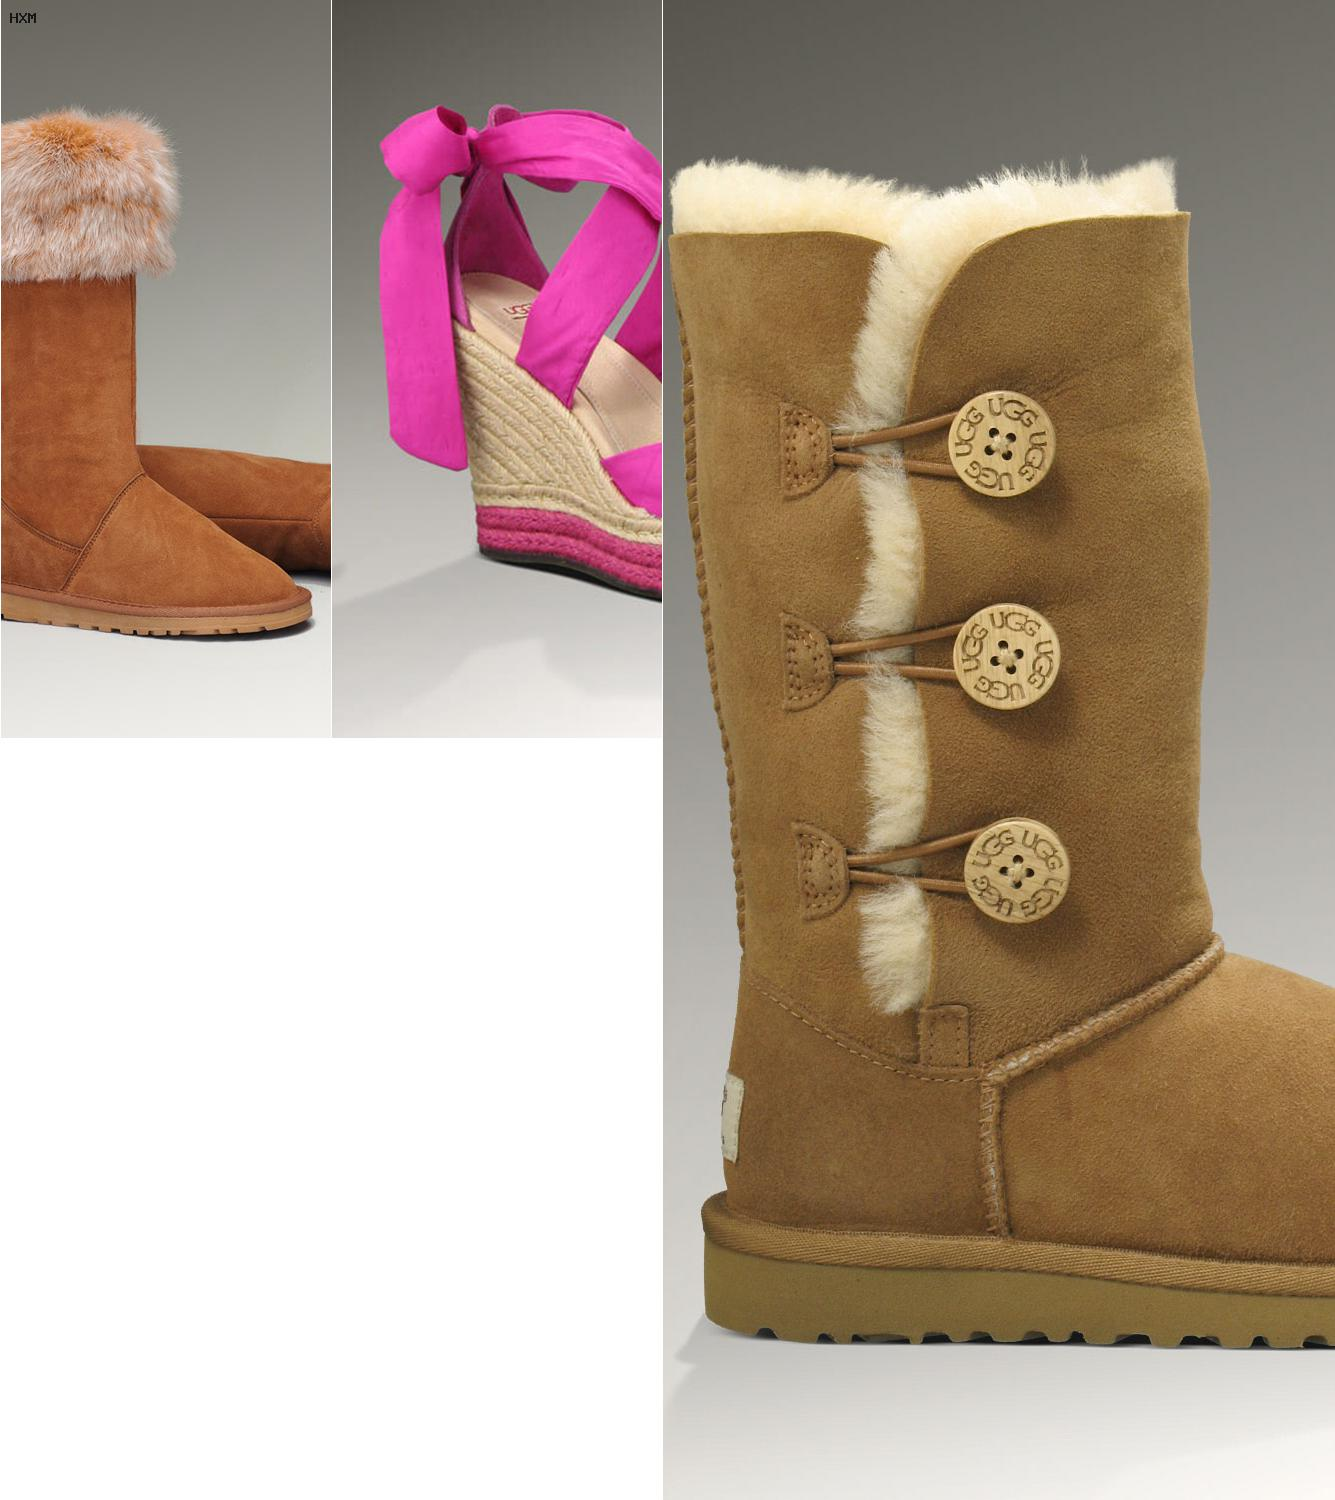 united states reasonable price info for ugg boots australia factory outlet